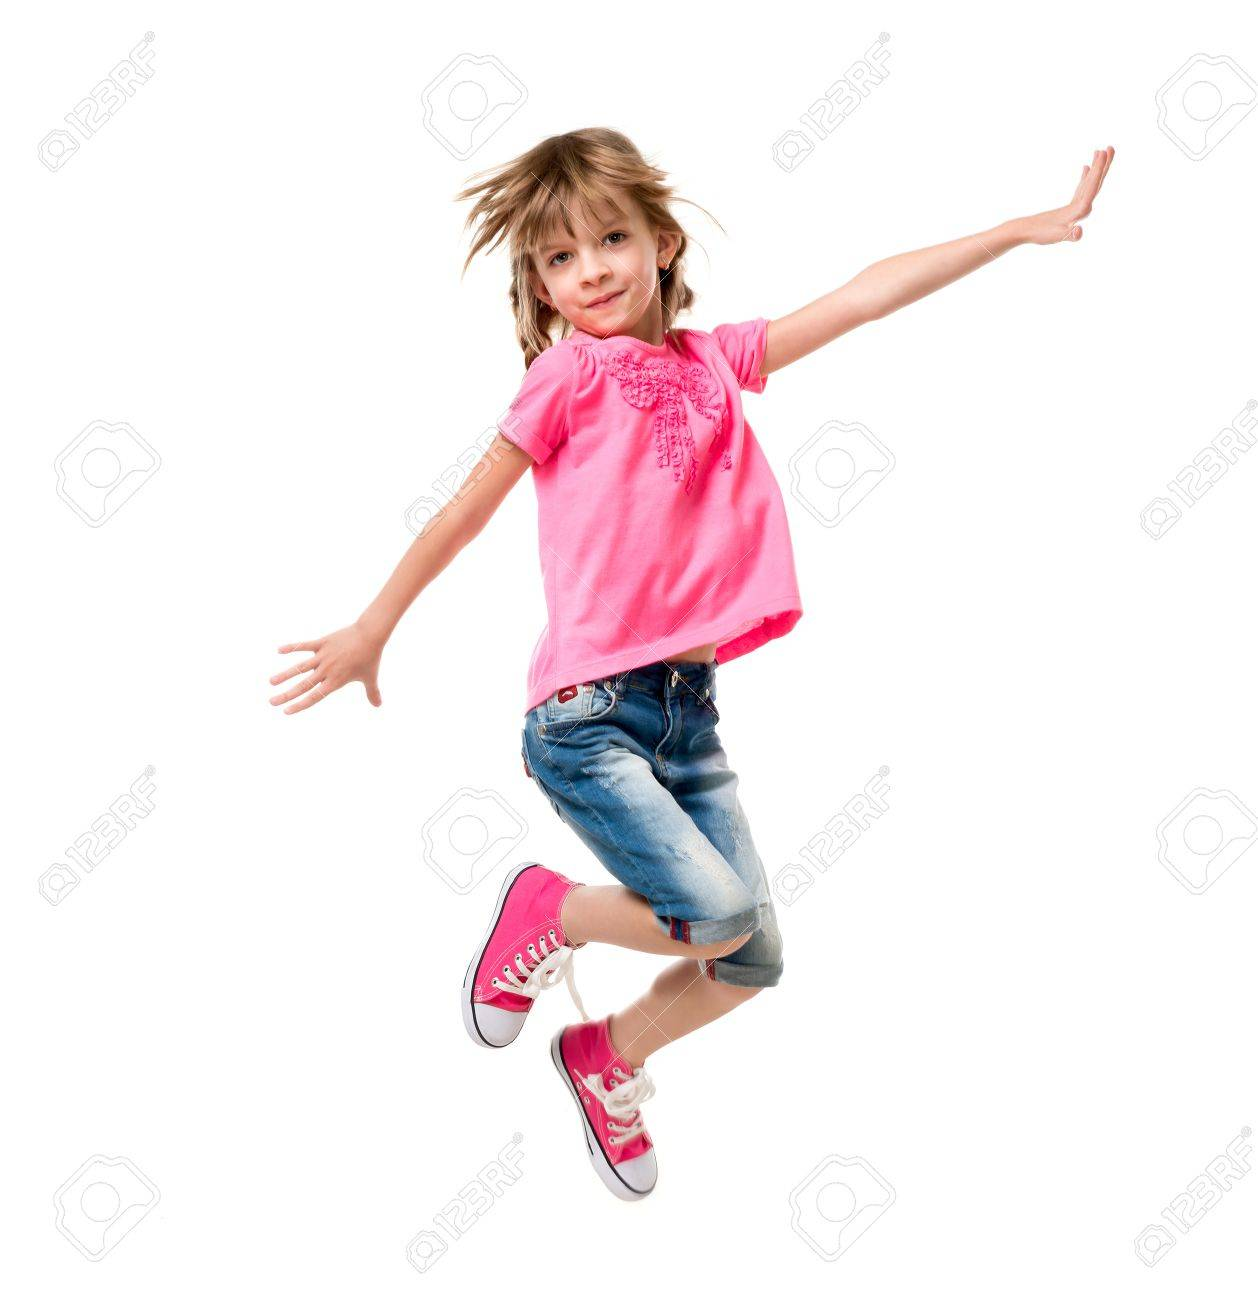 pretty little girl in pink jumping and laughing isolated on white background - 66160246